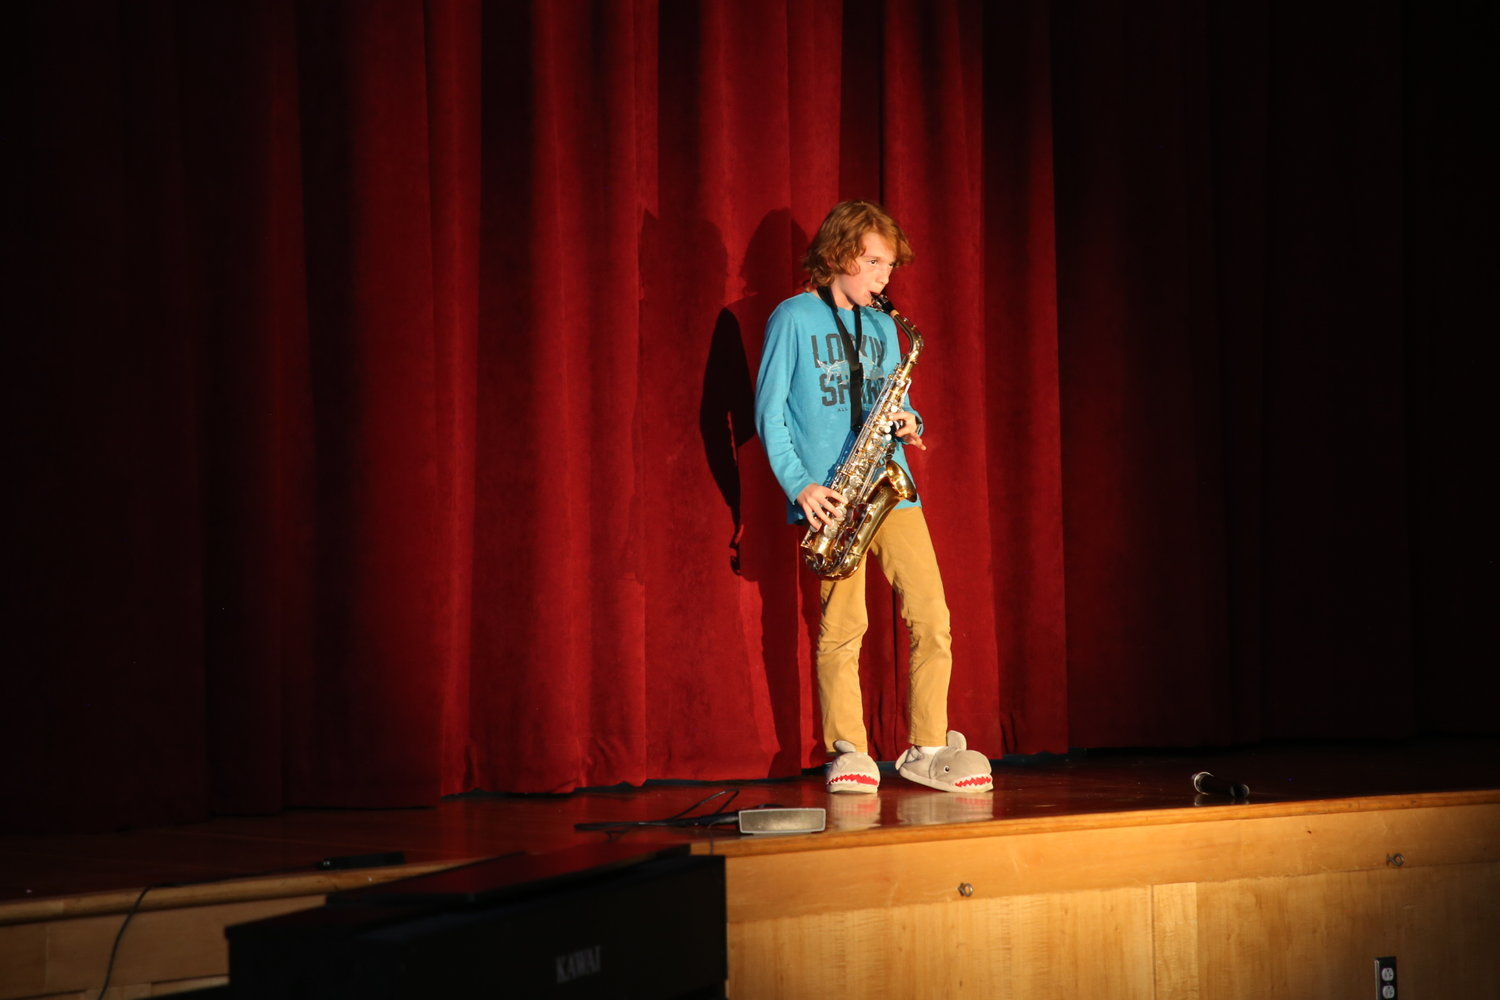 Nolan Moore- Played own arrangement of 5 songs for solo saxophone